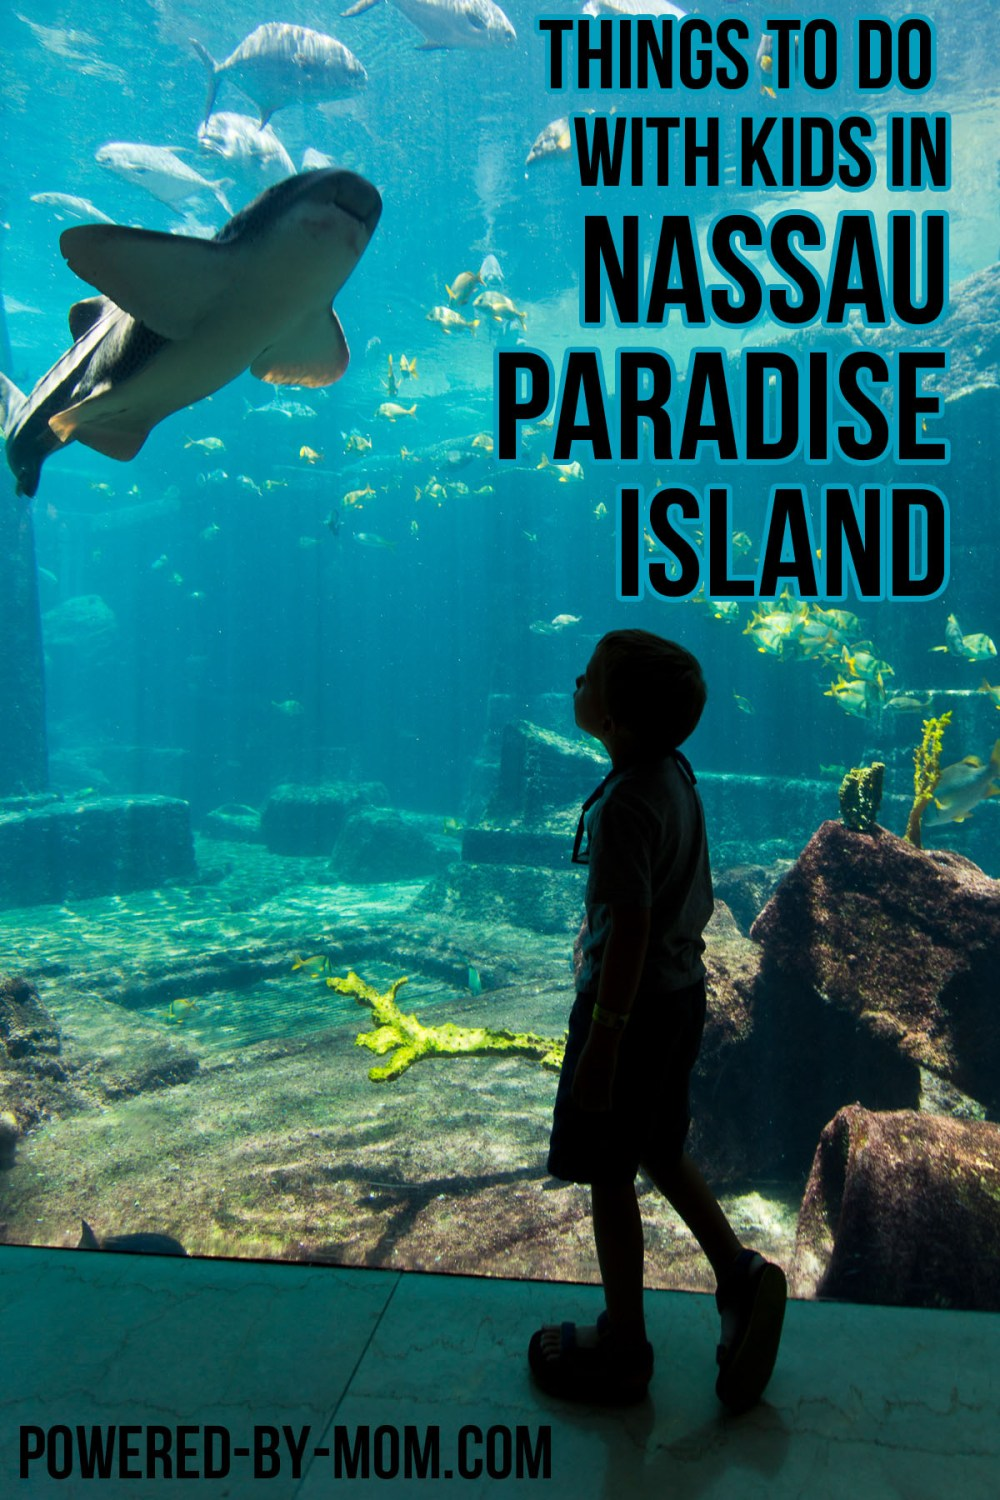 Things to Do With Kids in Nassau Paradise Island